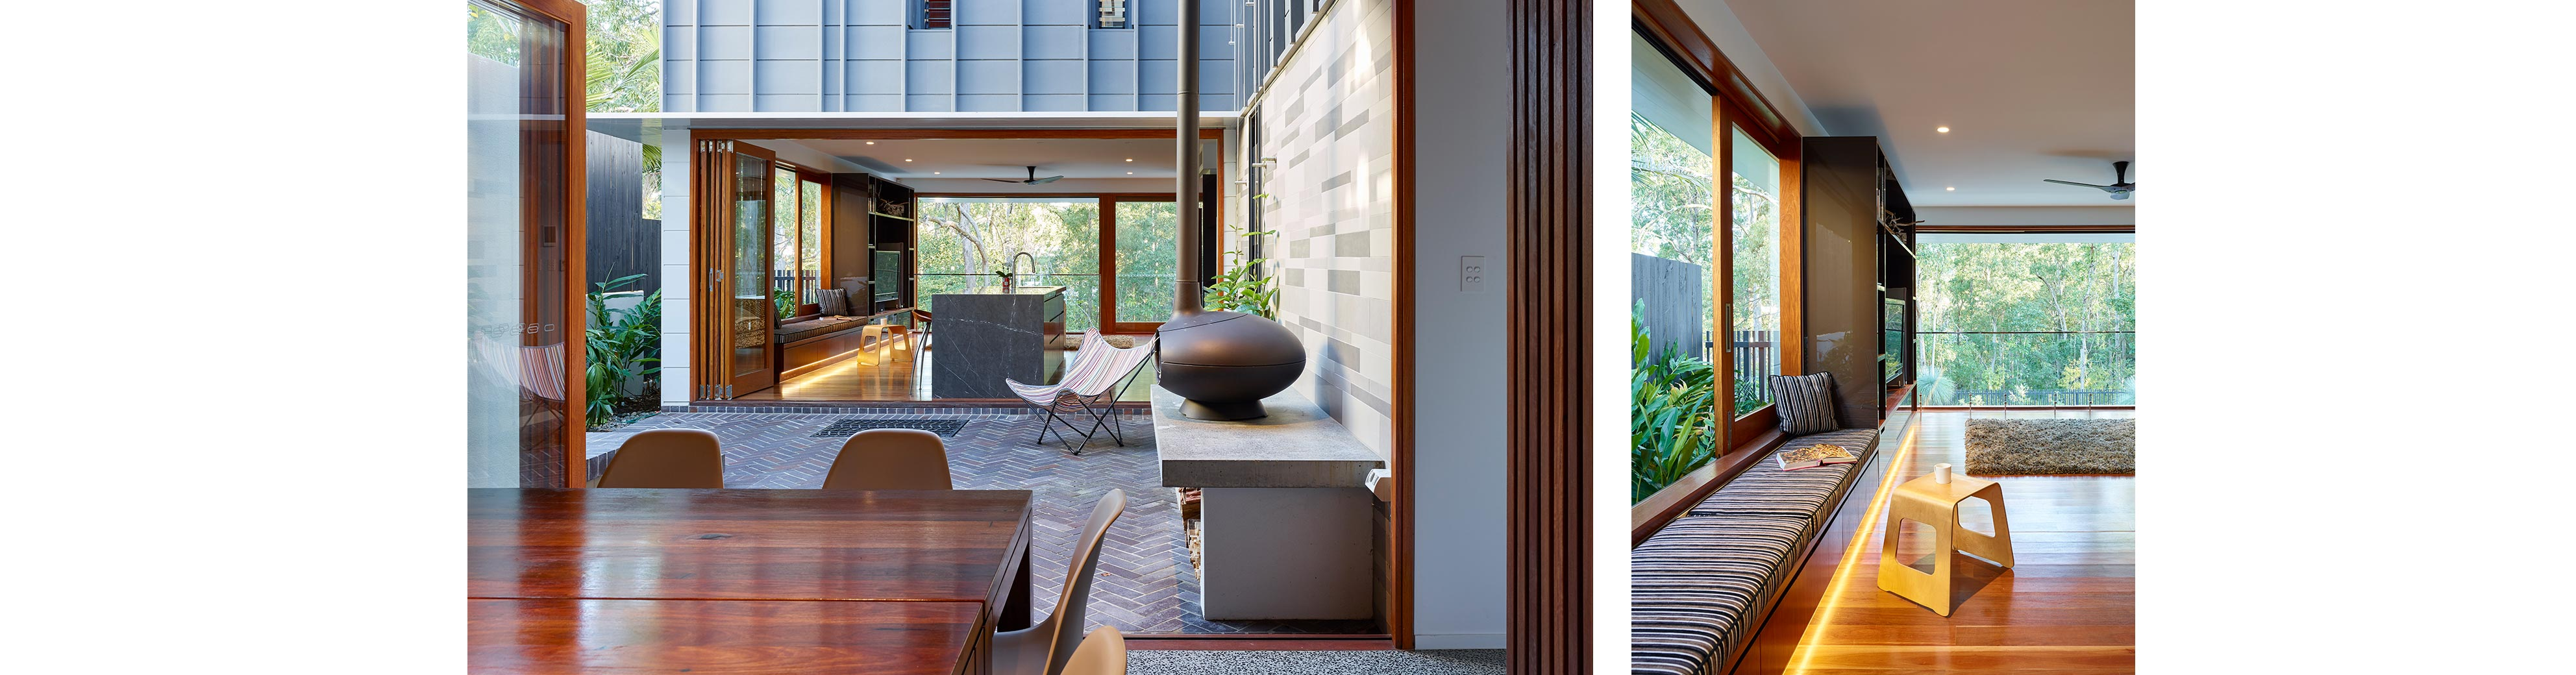 fifth-ave_living-area